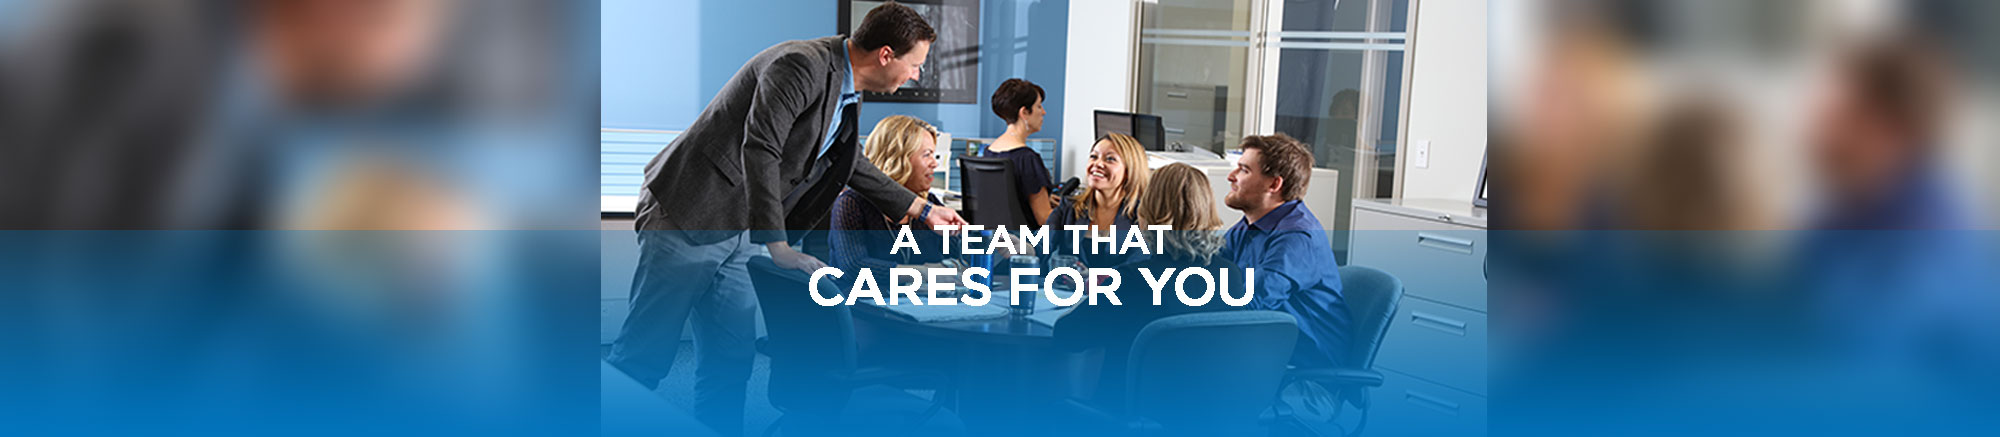 a team that cares for you